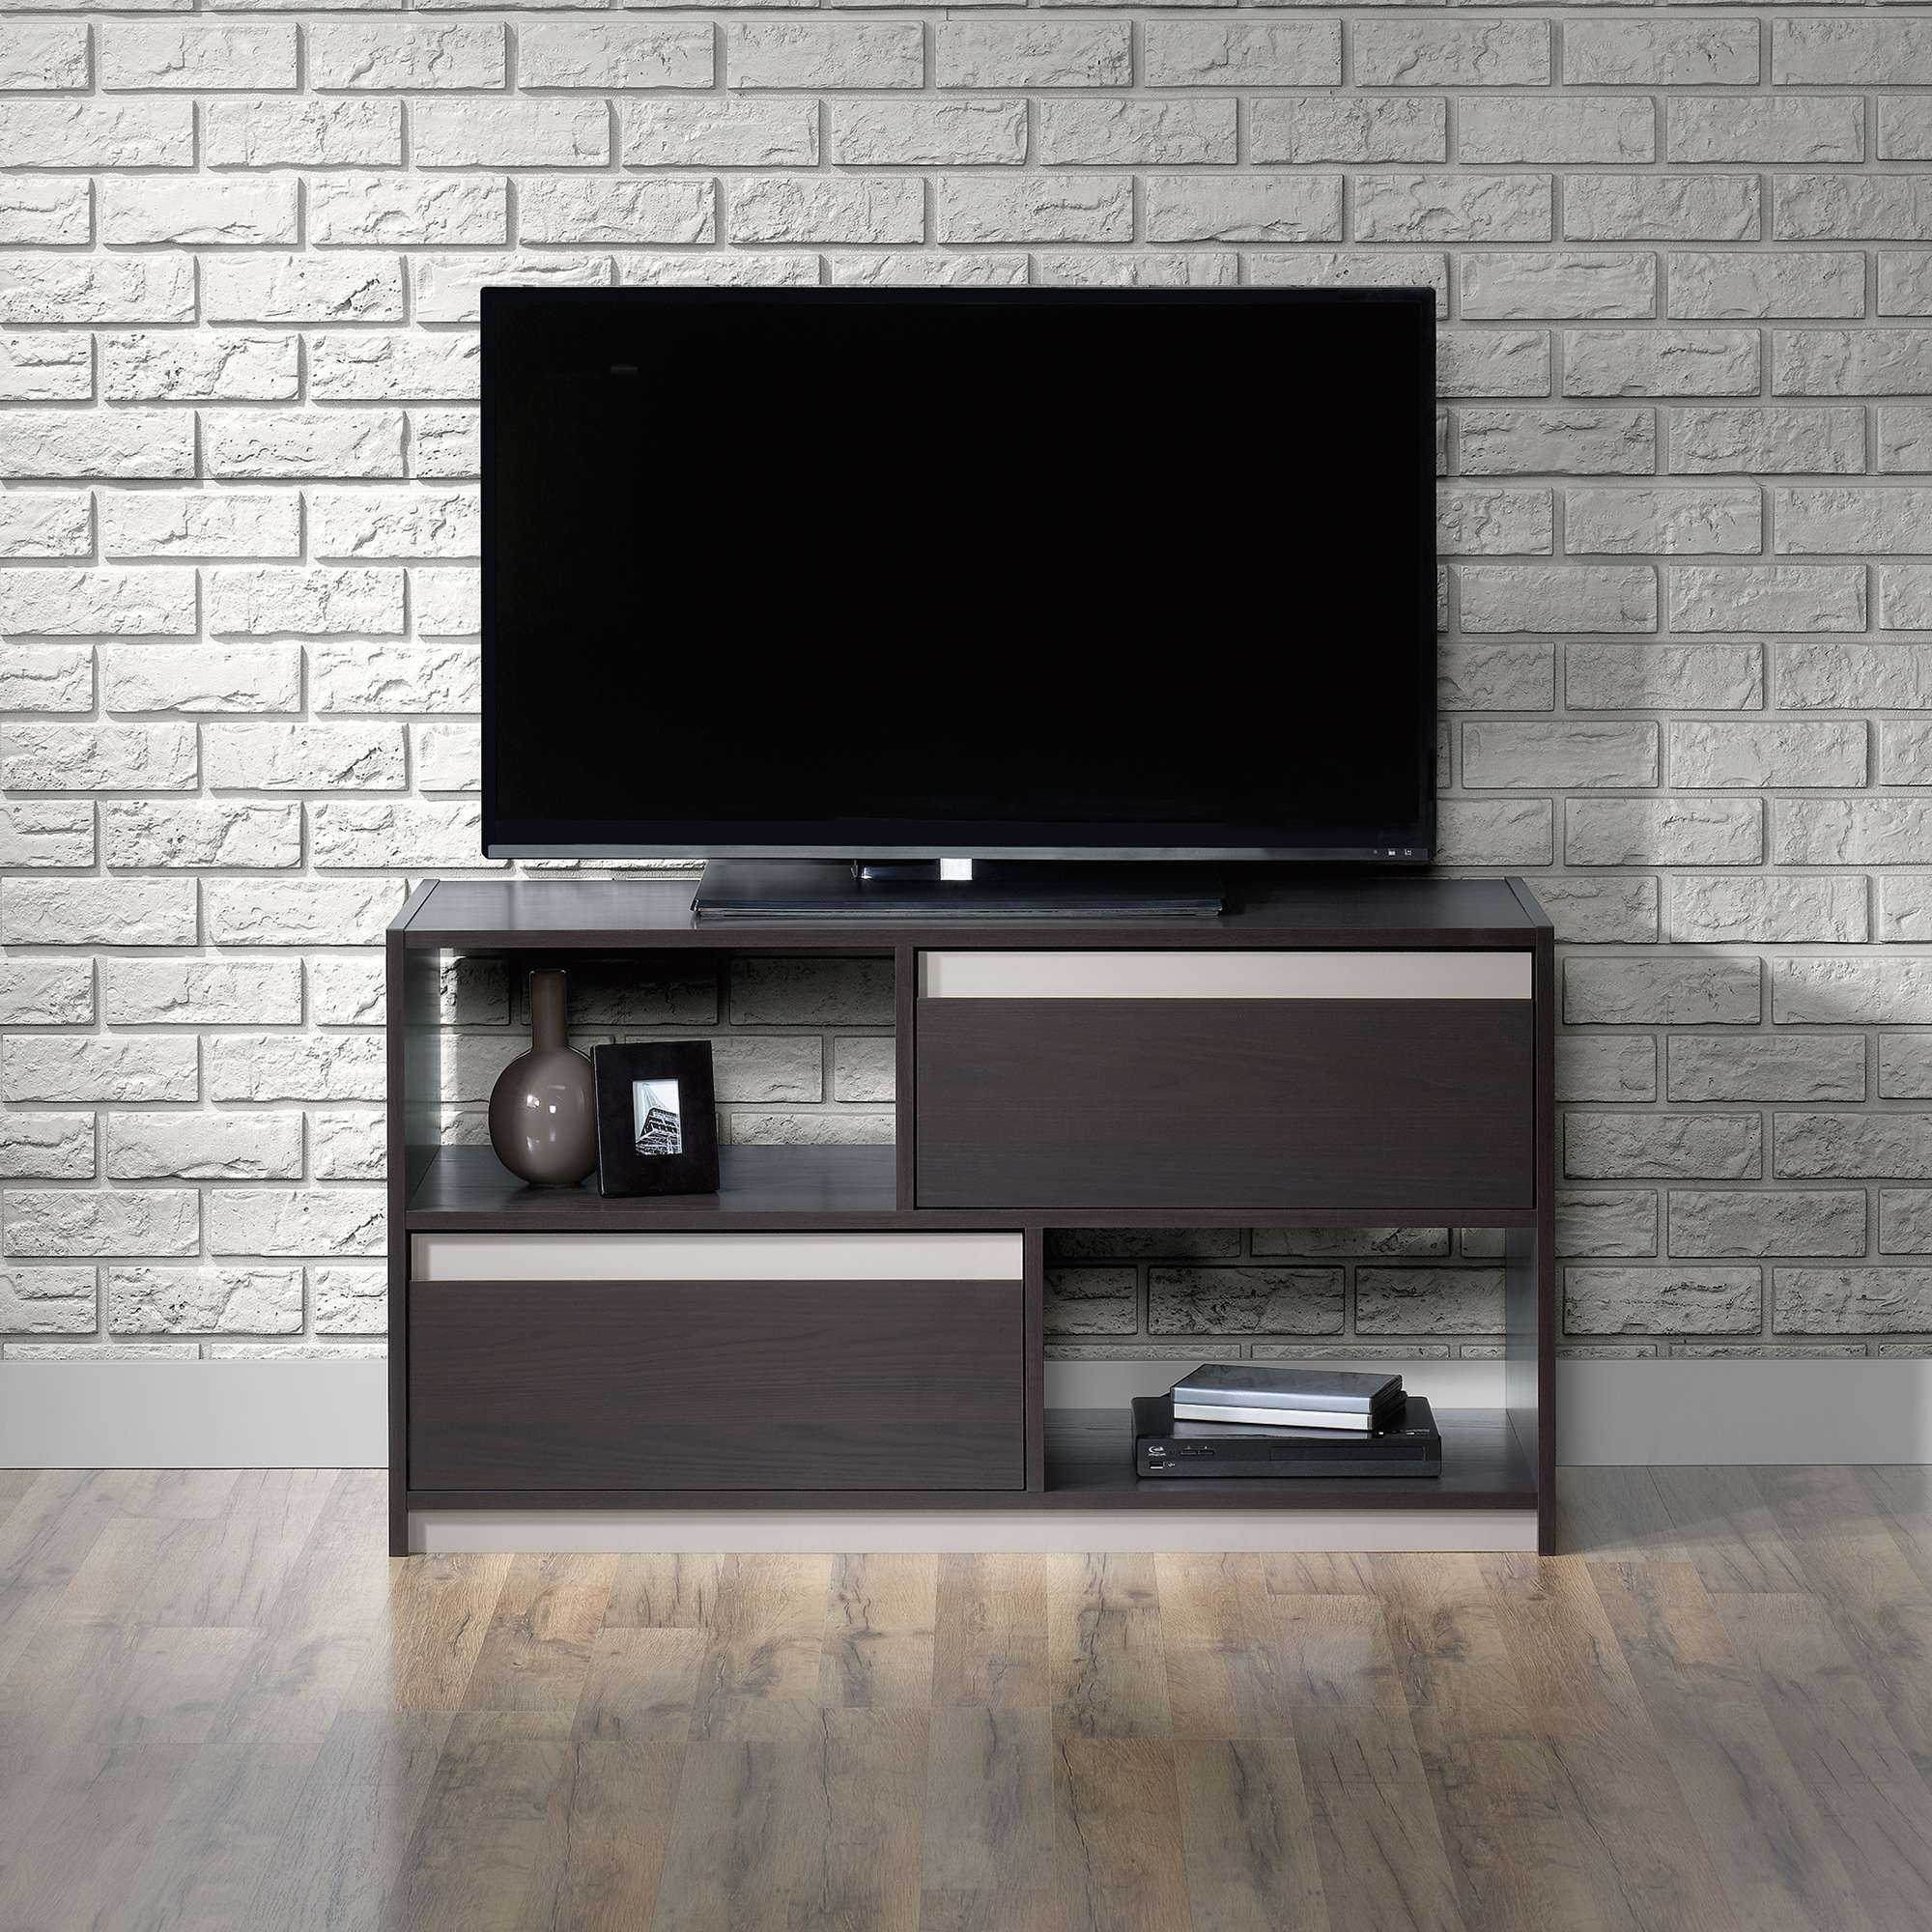 Square1 | Tv Stand | 418503 | Sauder Intended For Square Tv Stands (View 15 of 15)